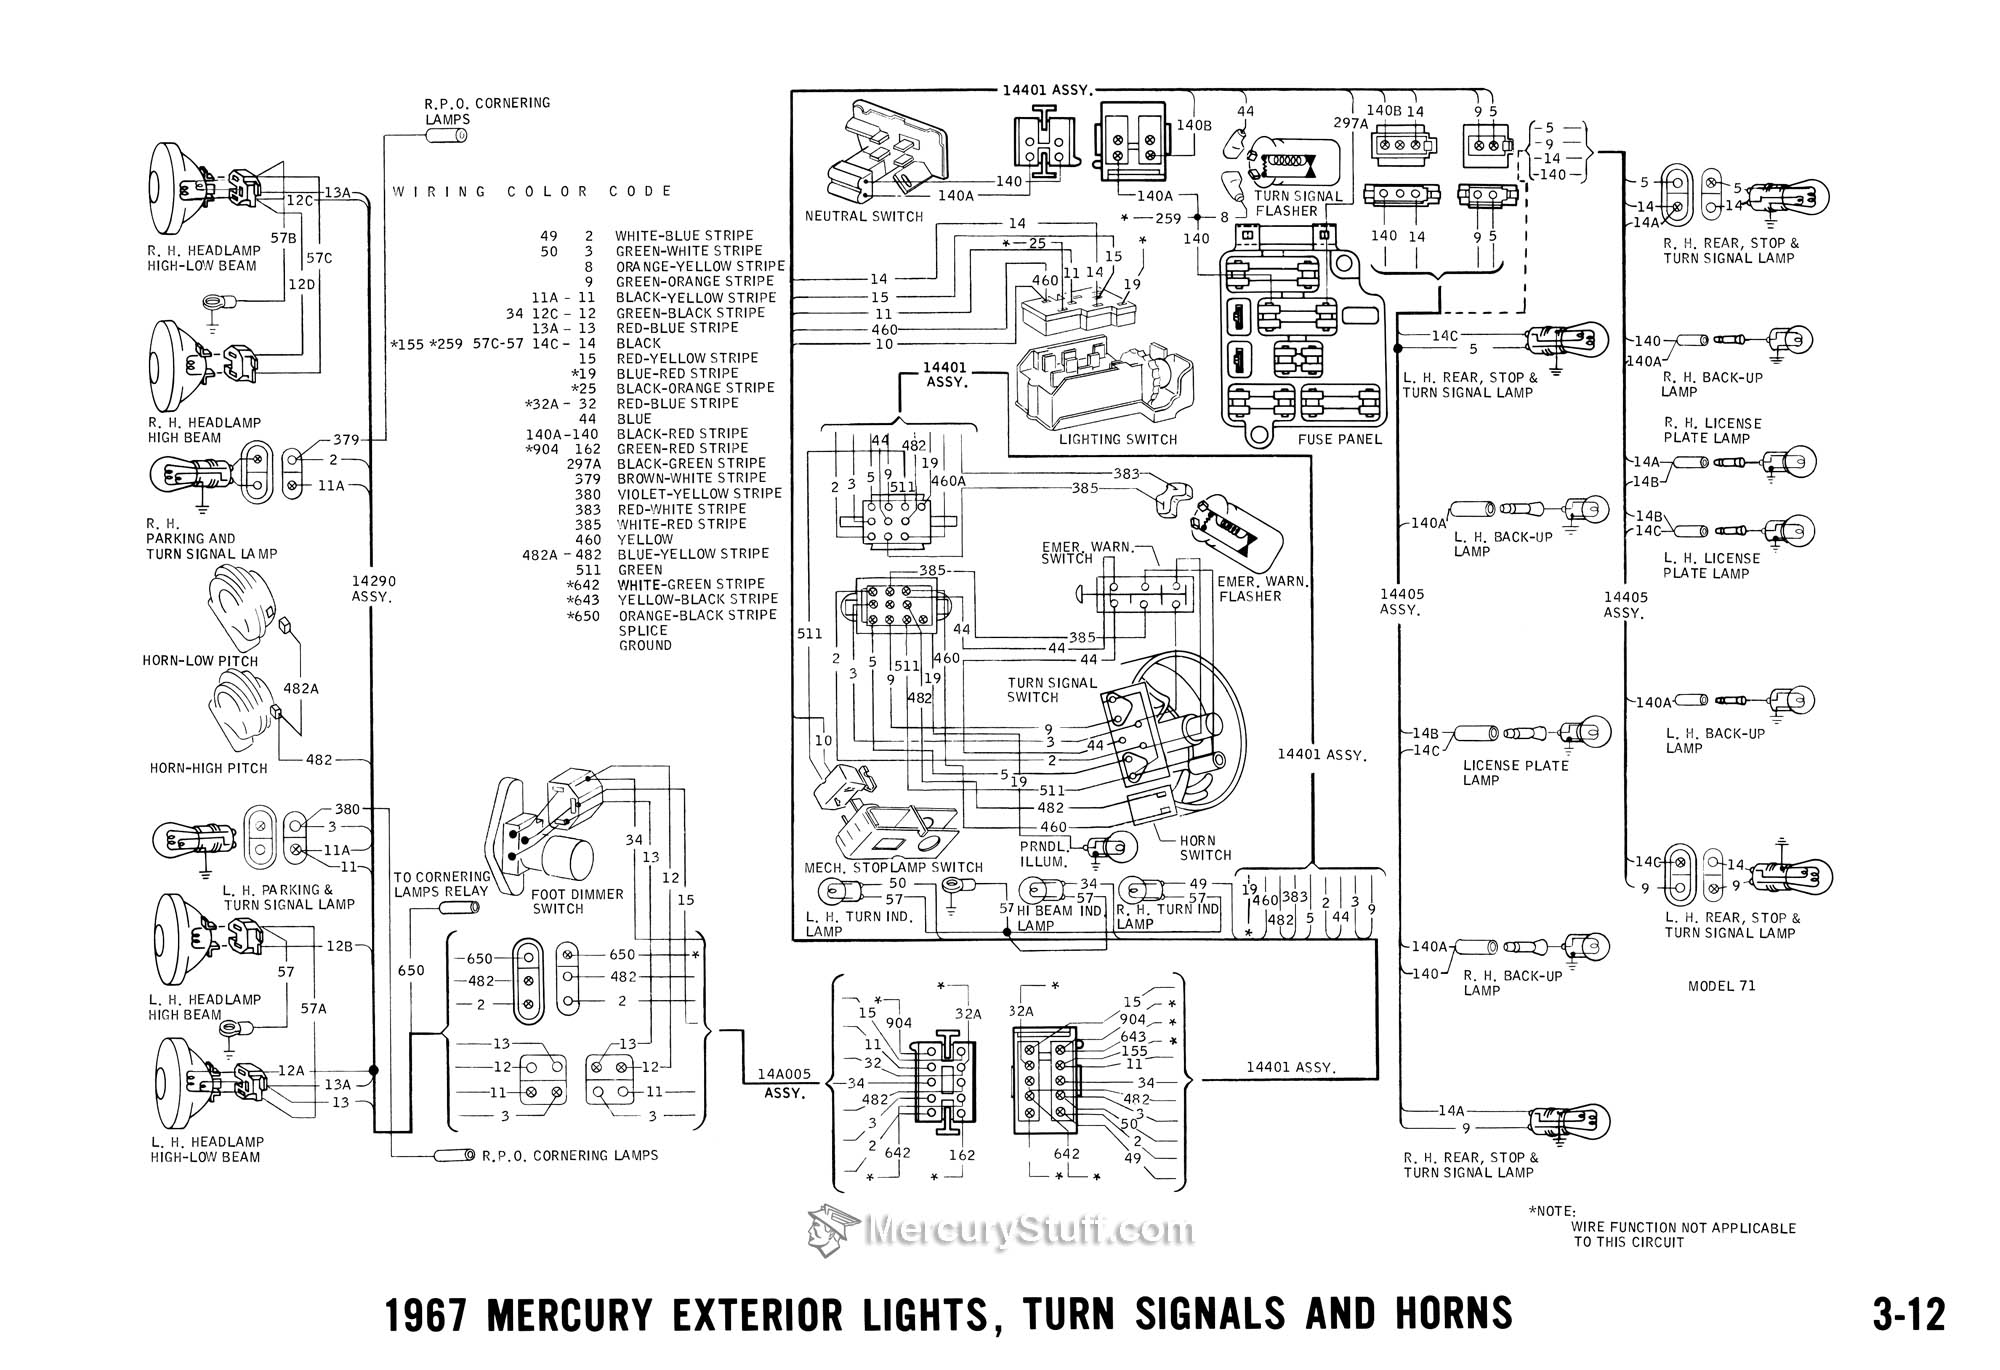 1969 car wiring diagrams 1968 mercury cougar diagram data wiring rh 16 16 13 schuerer housekeeping de